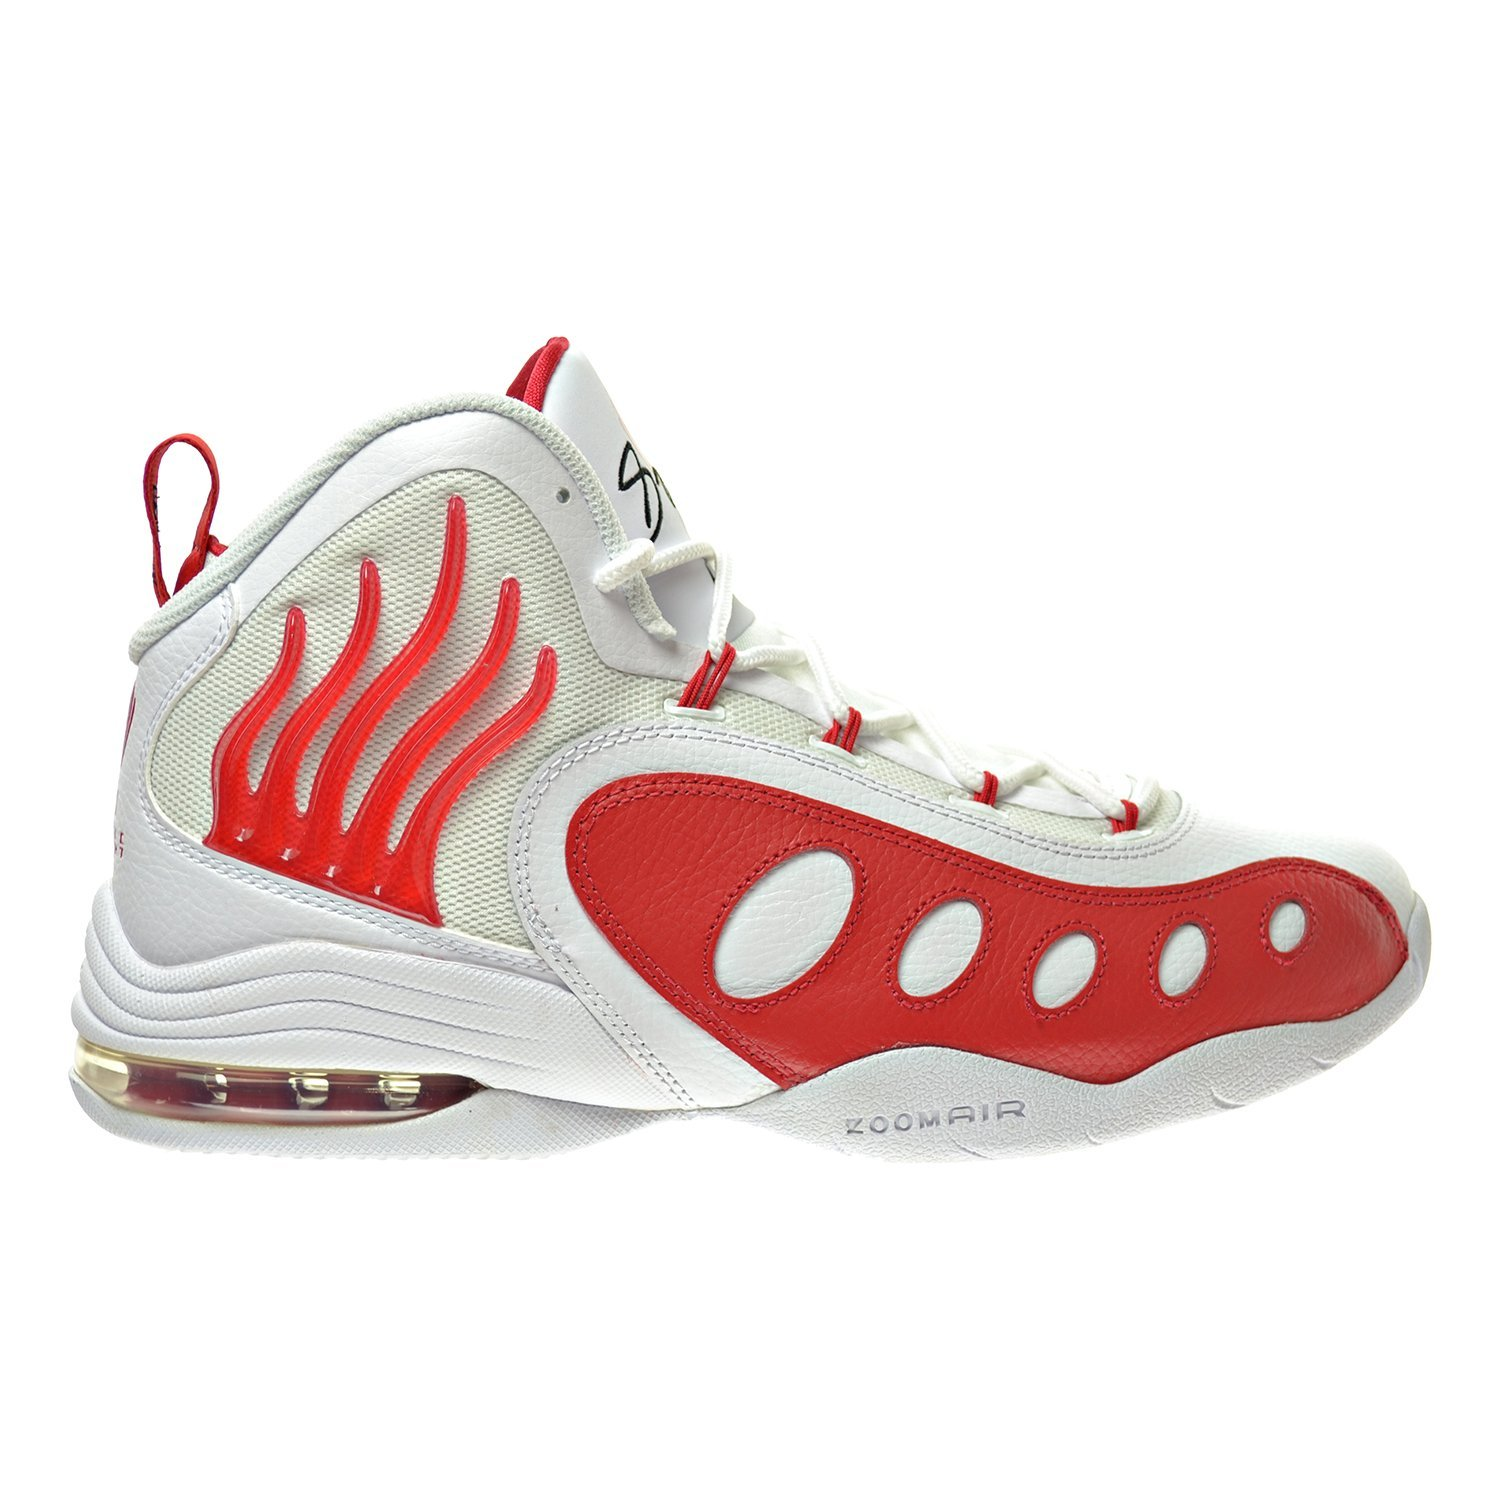 Confesión escritorio heroína  Buy Nike Sonic Flight Men's Shoes White/University Red/Black ...